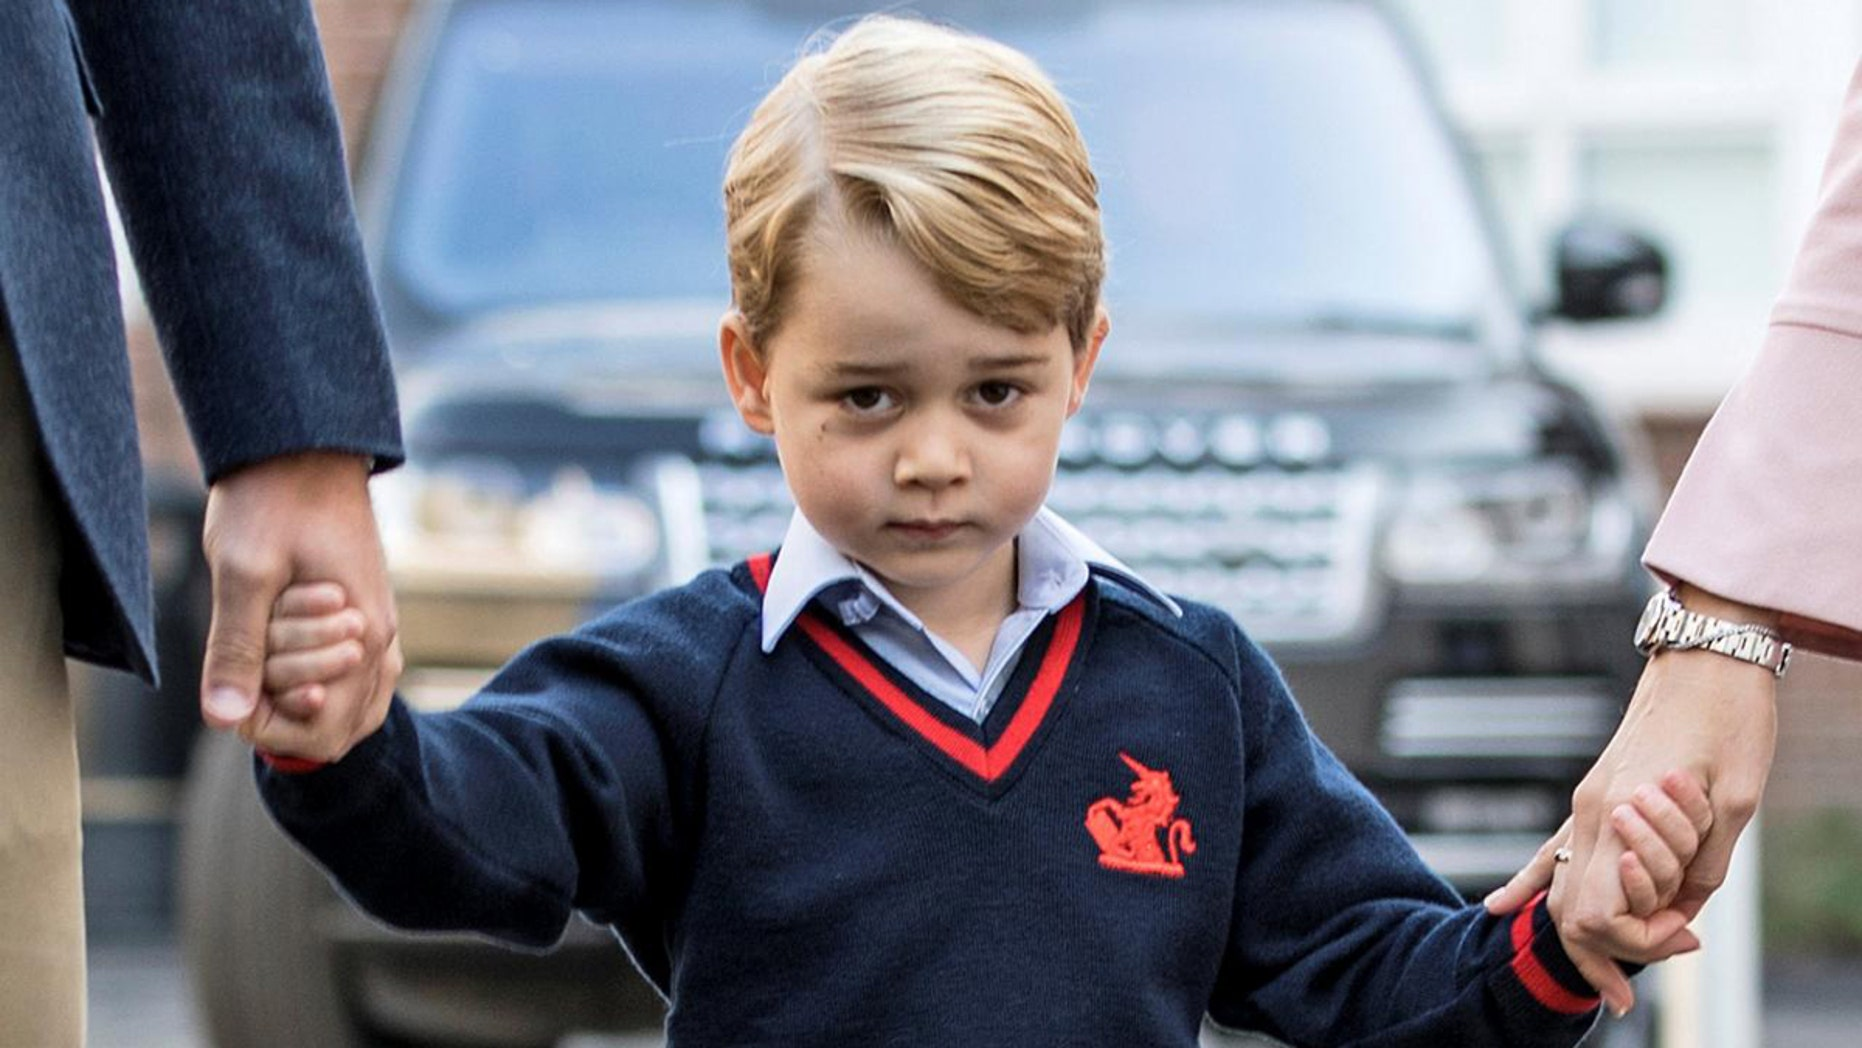 Prince George is seen holding his parents hands outside Kensington Palance in the United Kingdom.